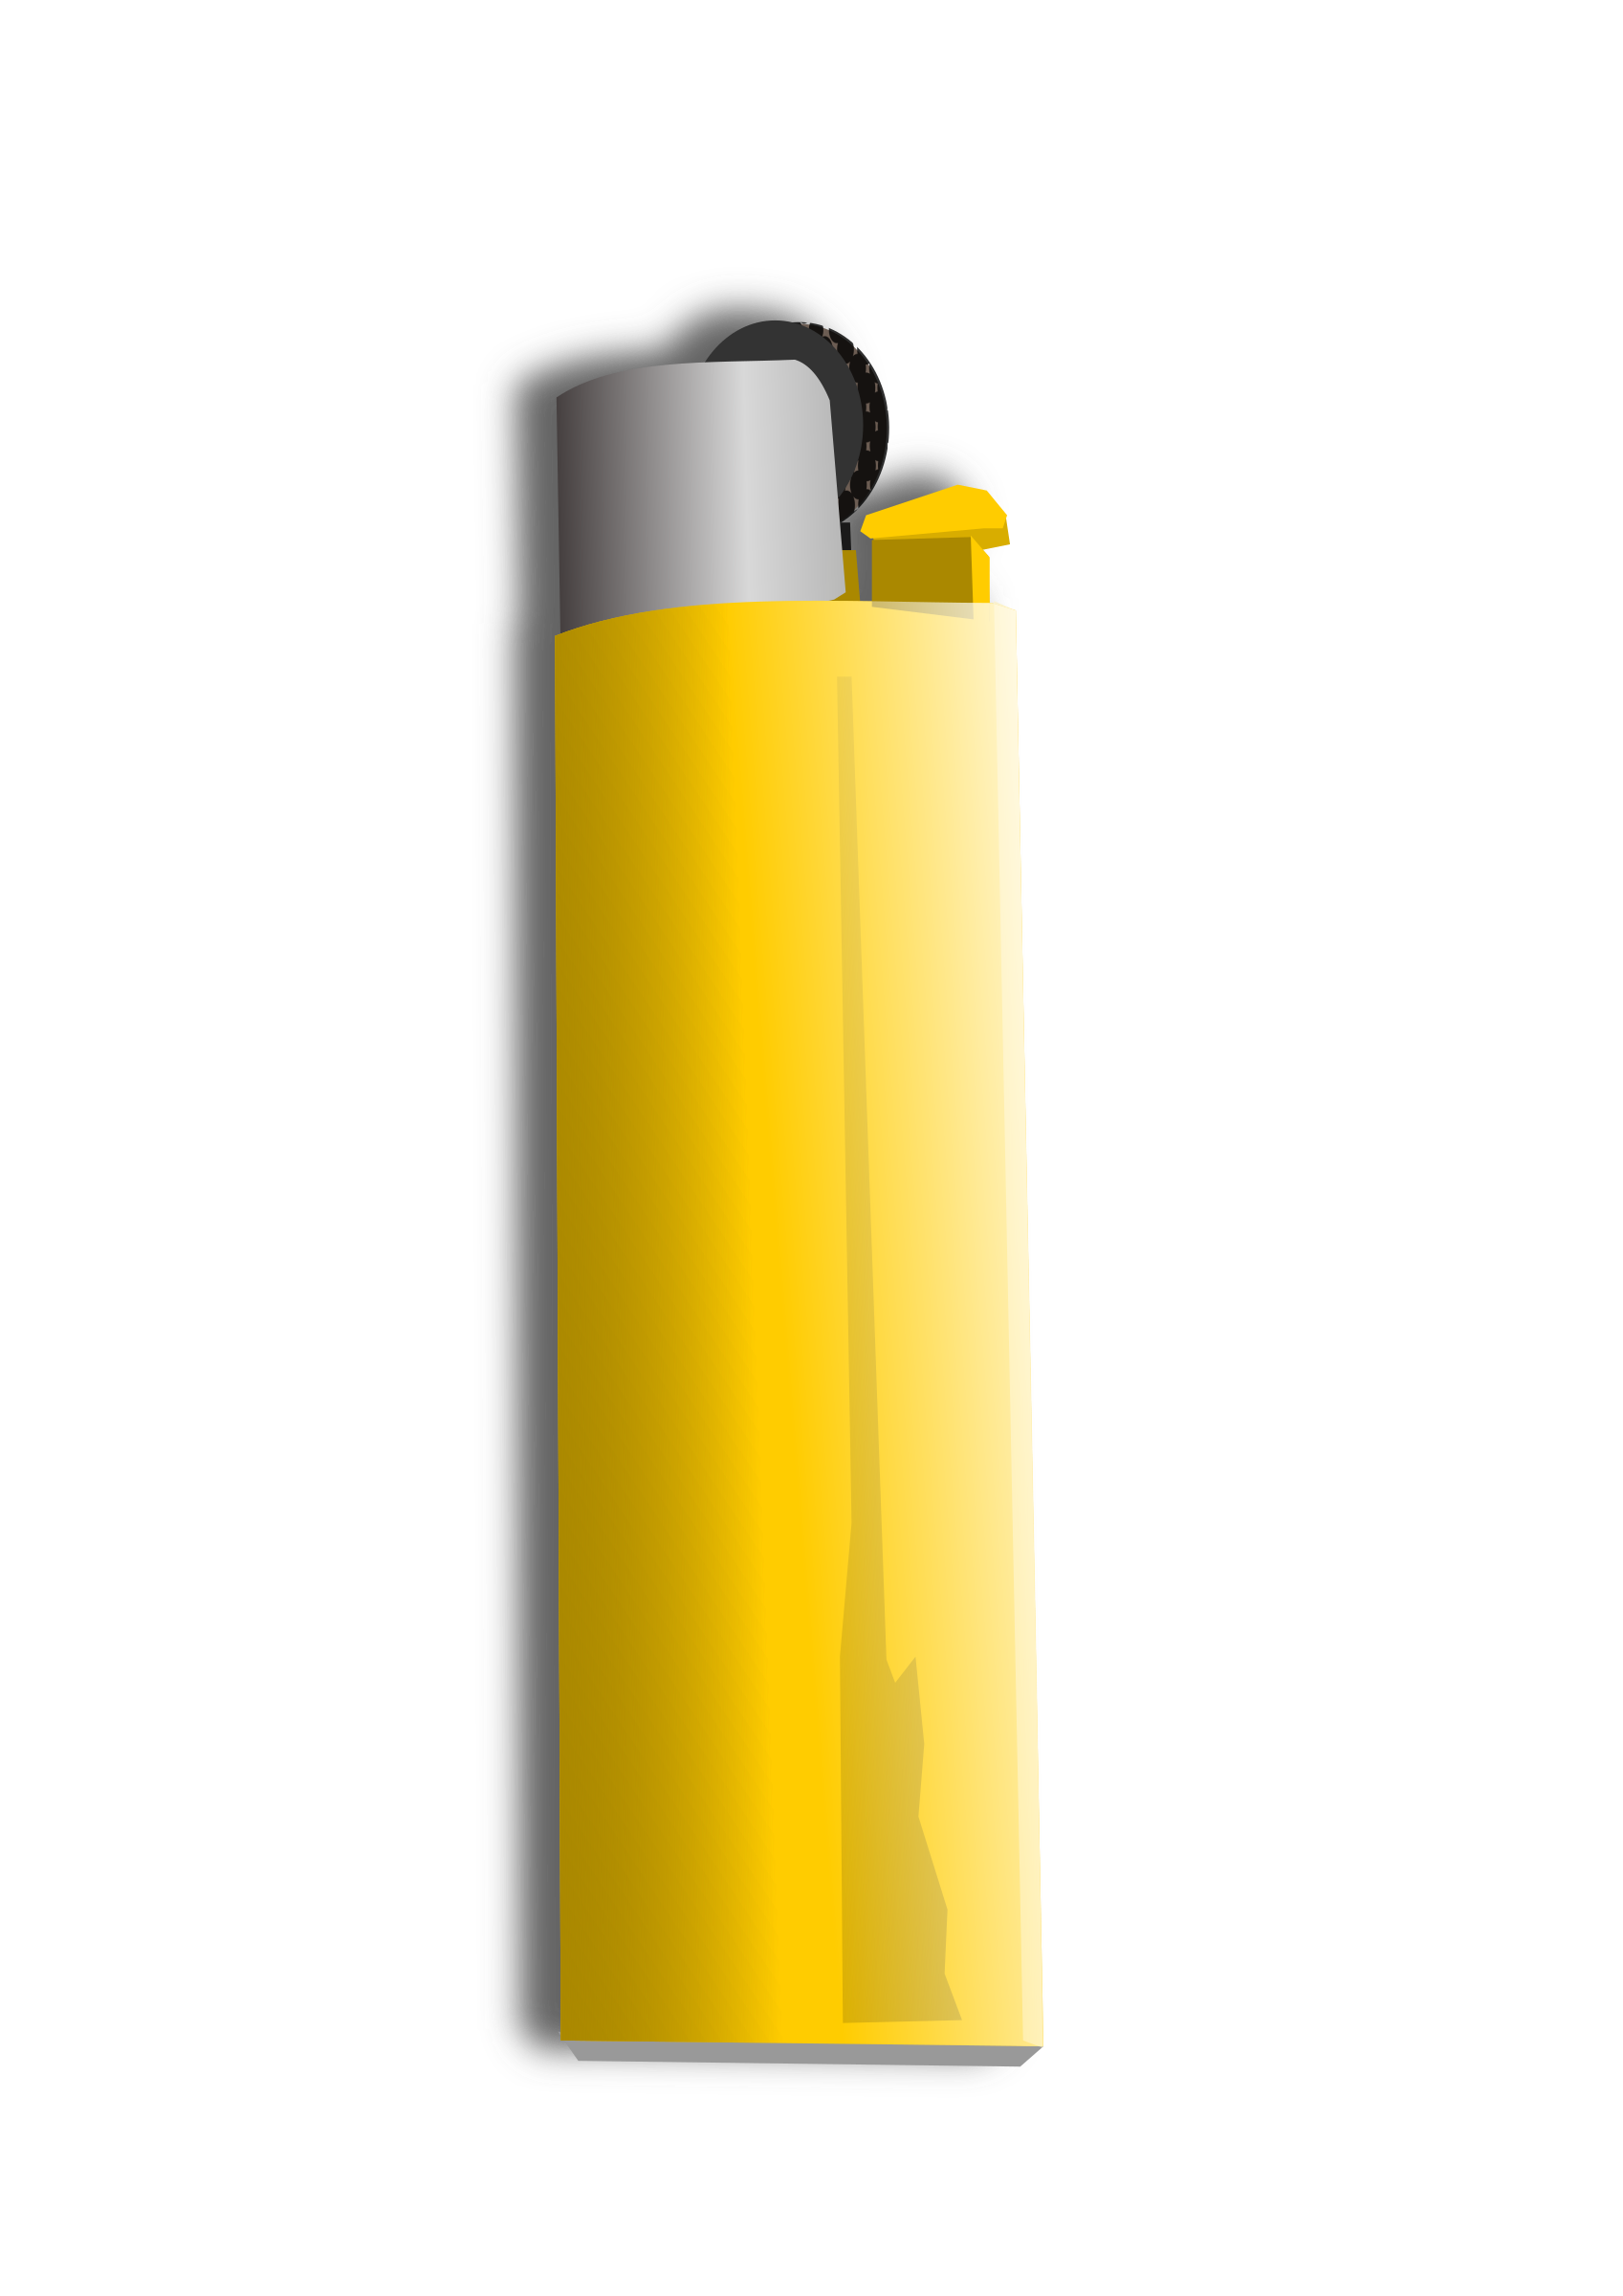 clipart royalty free library Light clipart lighter fluid. Png images free download.